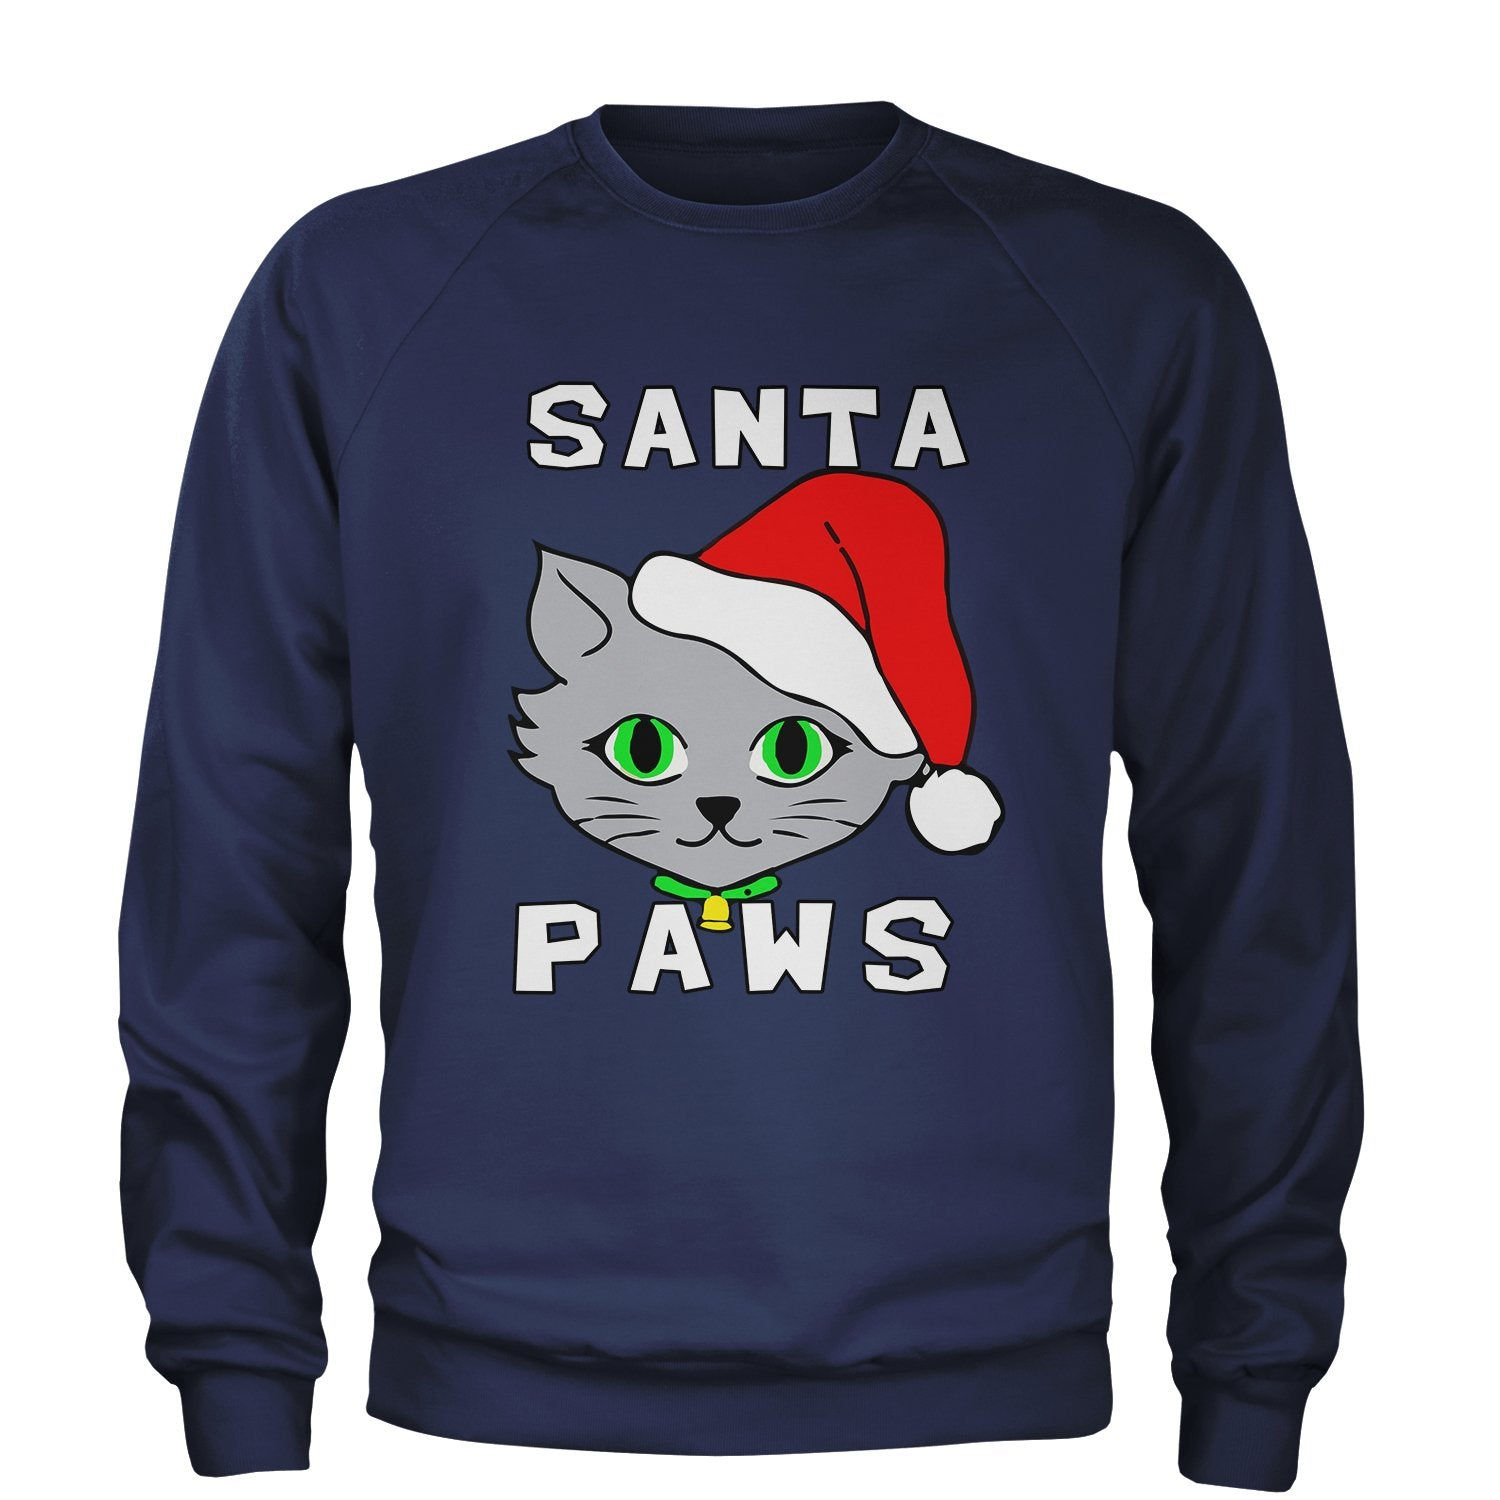 Santa Paws Cute Cat Collage Ugly Christmas Sweater Kitty 3D Print MEDIUM